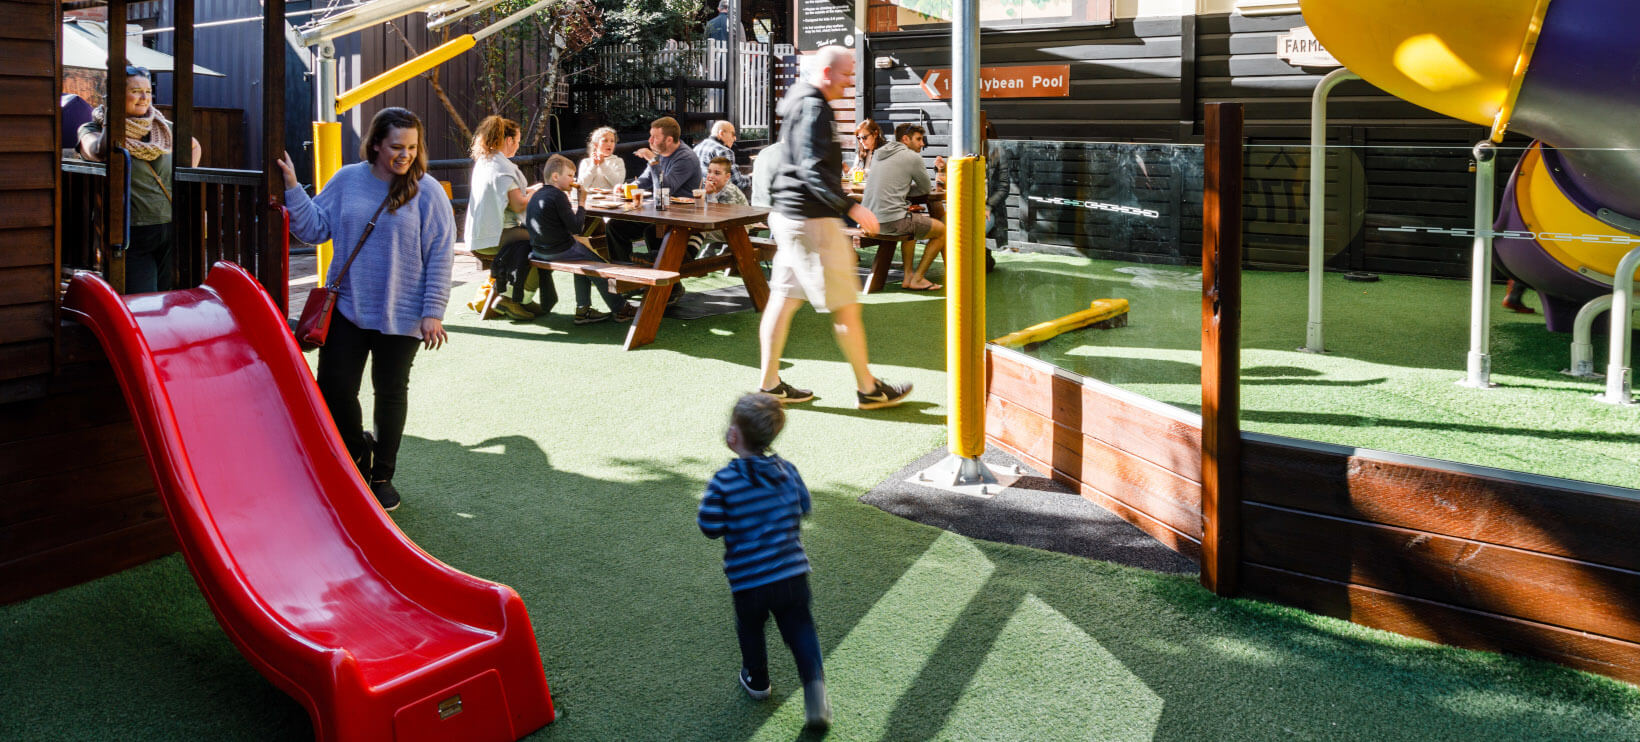 Families dining in kids play area at cafe